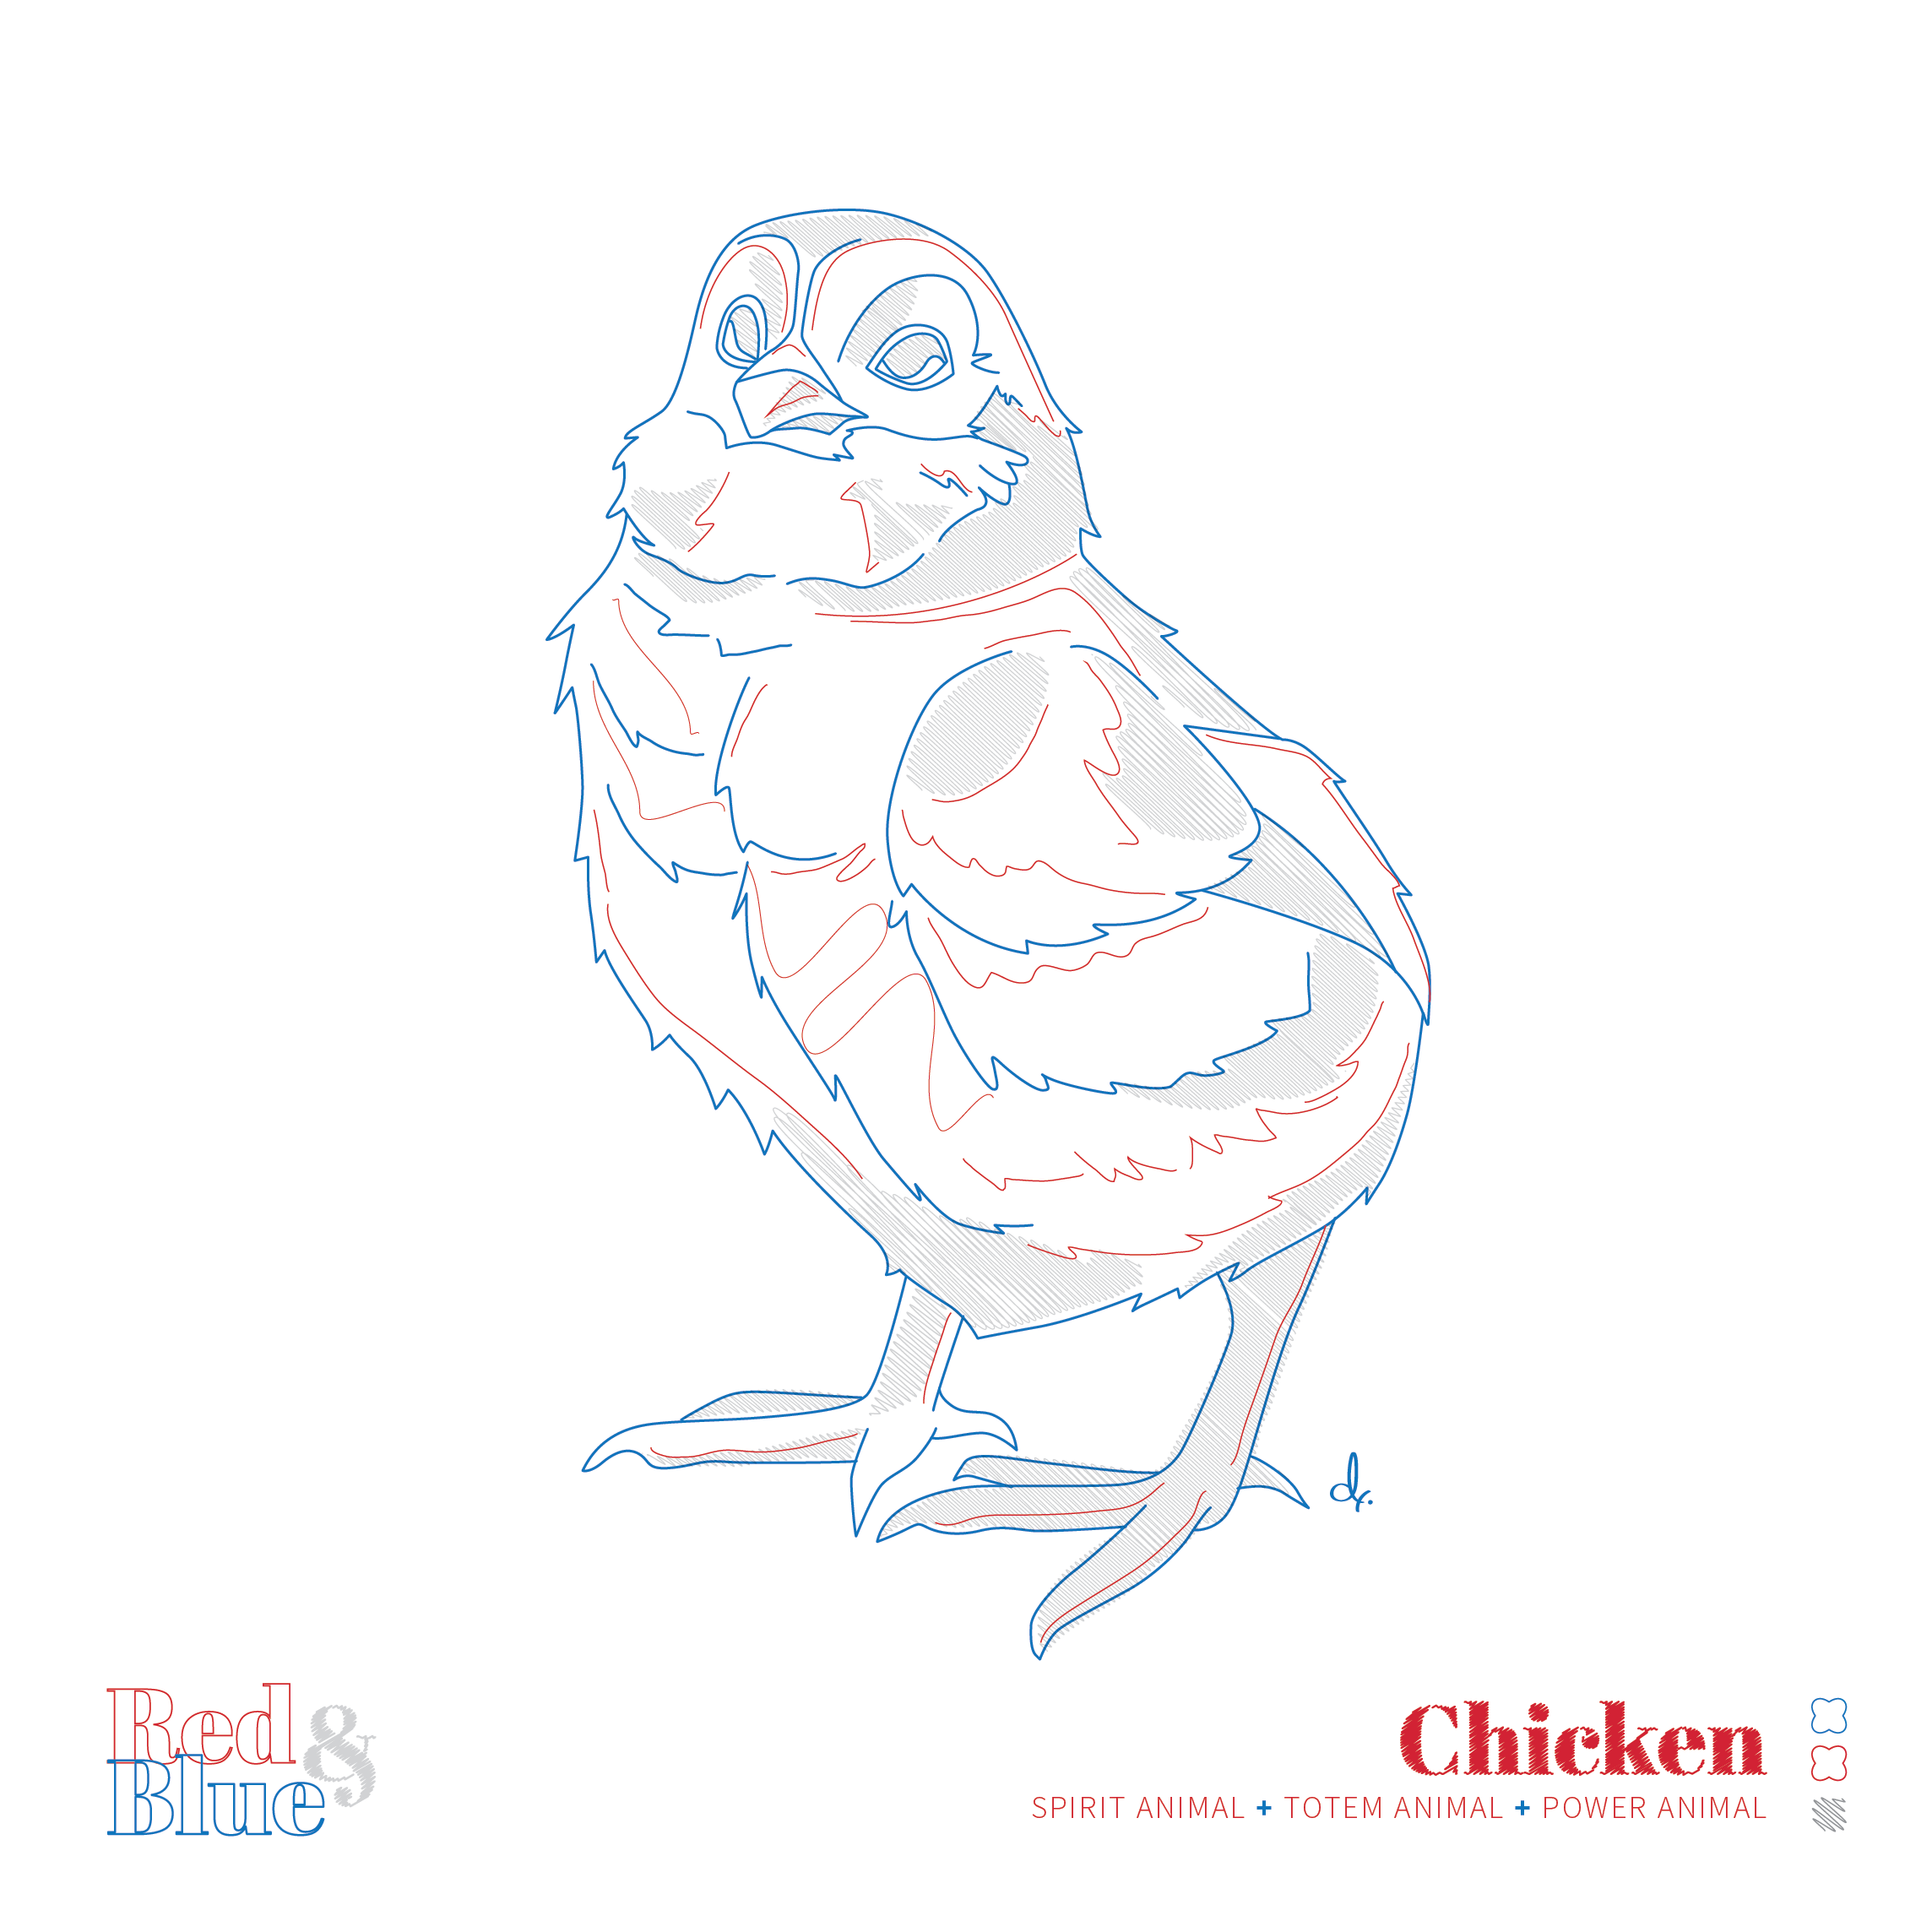 Chicken Red and Blue Symbolism and Meaning